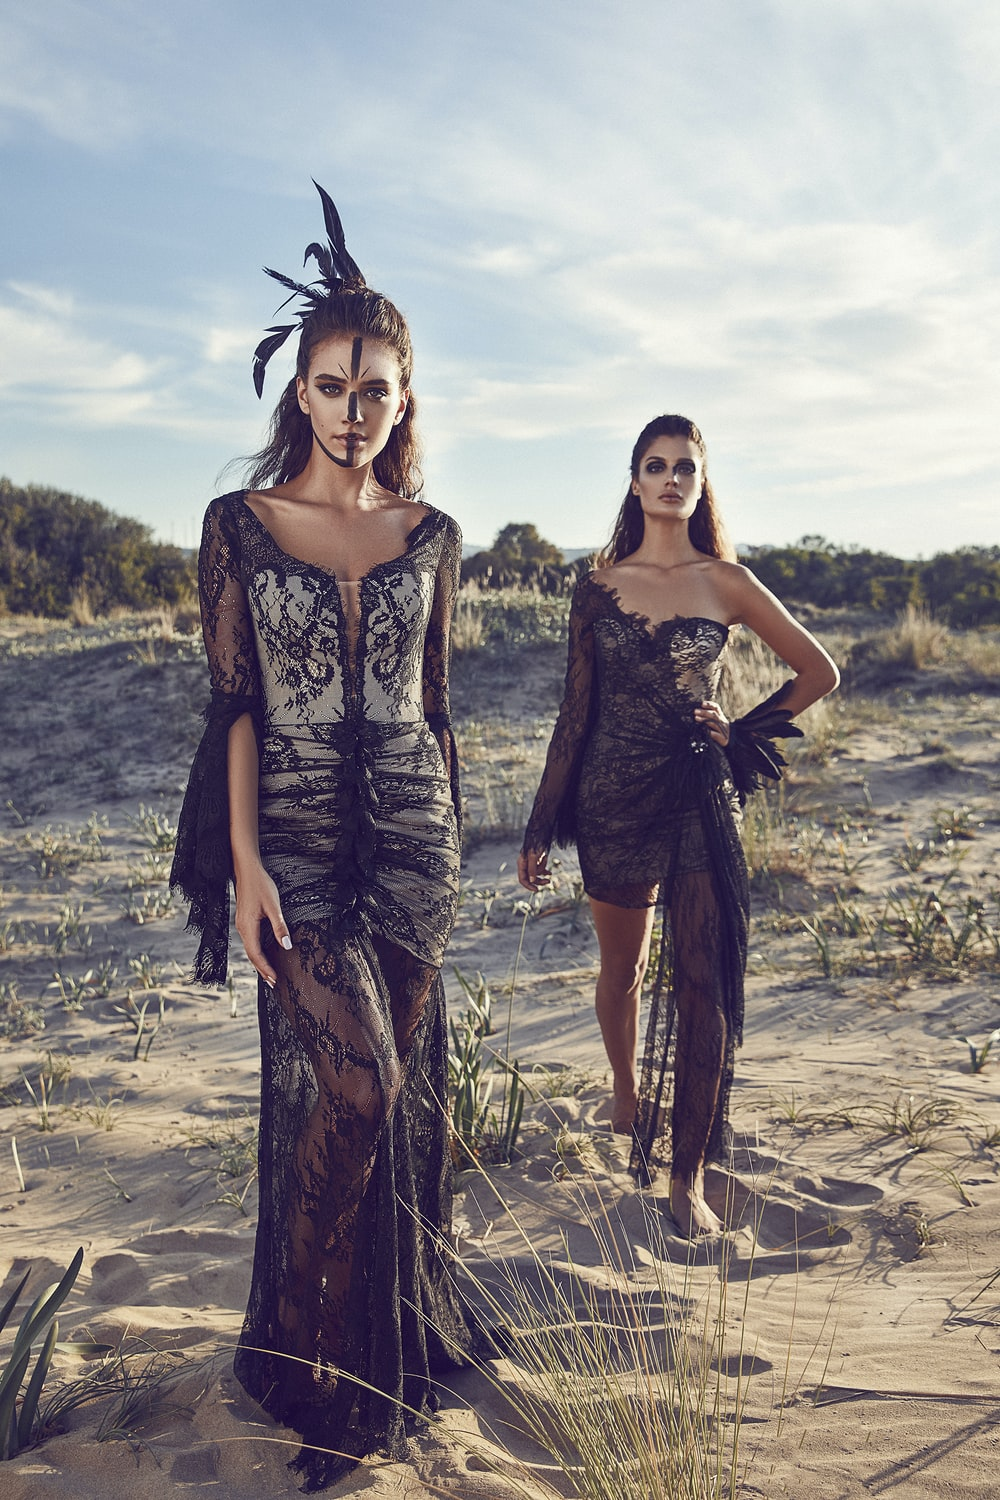 women wearing black lace dresses in dessert